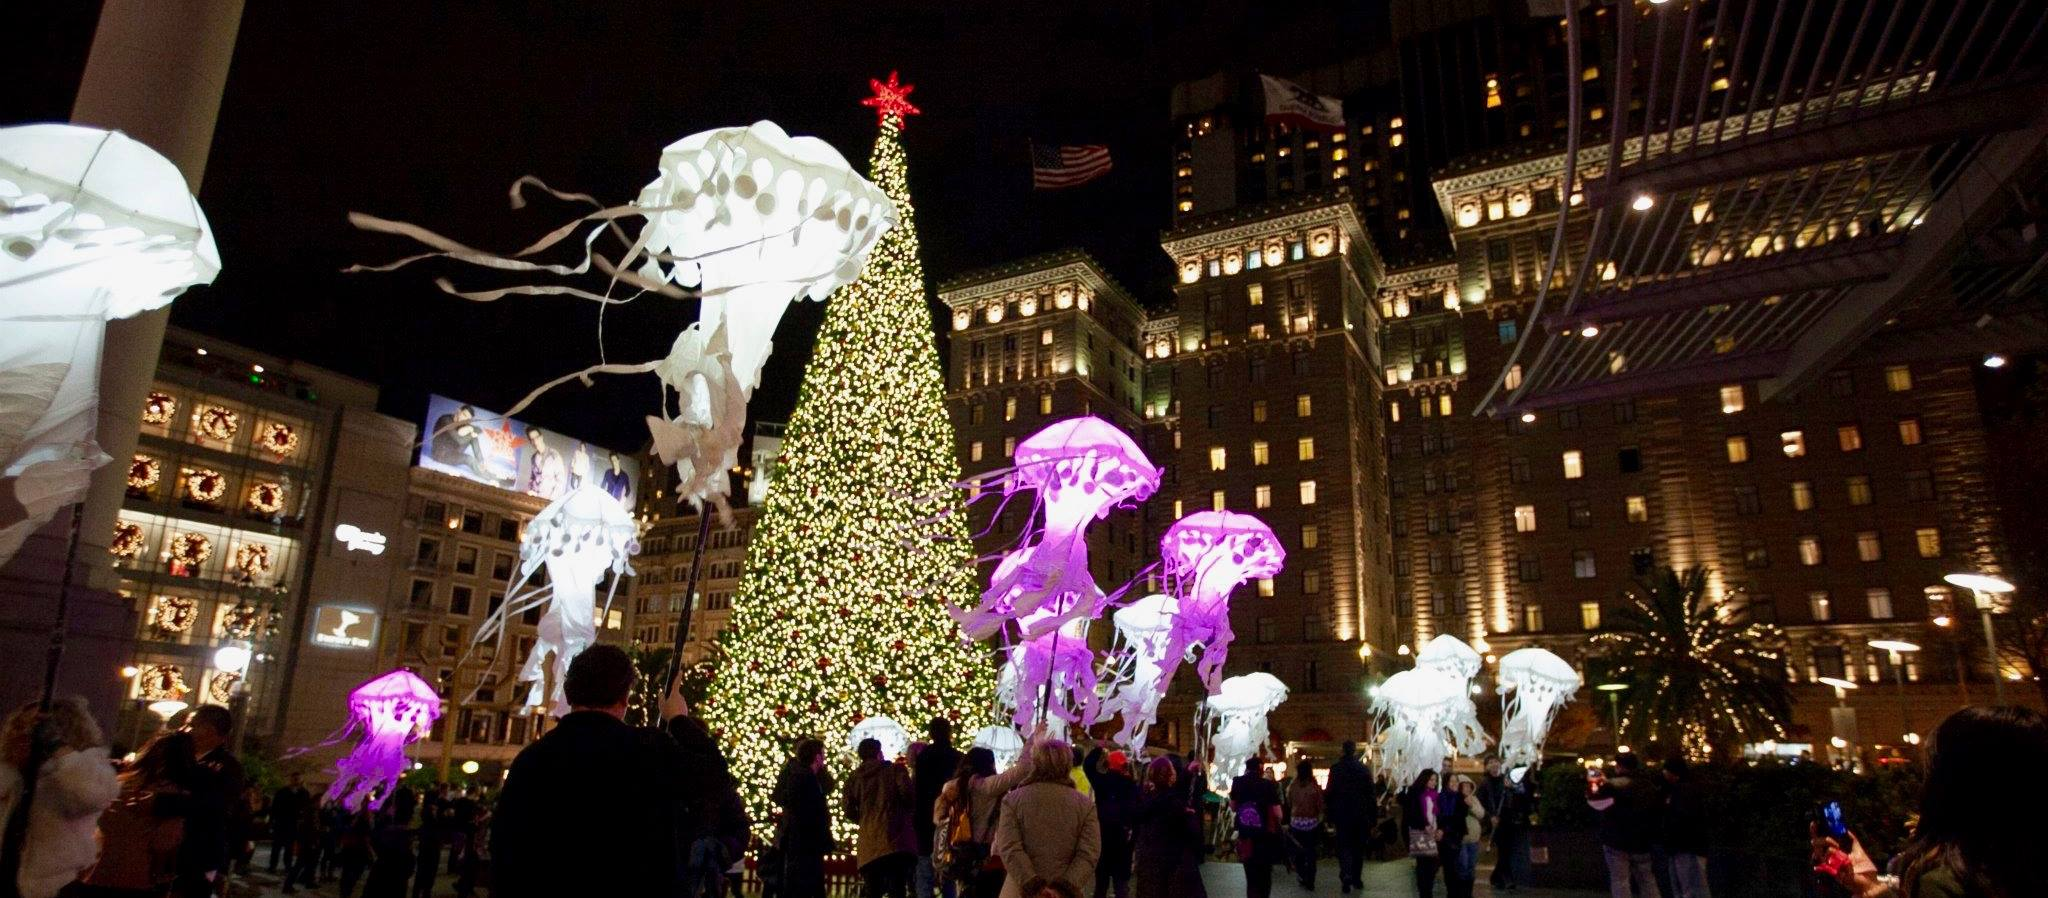 Jellyfish puppets waving in front of the giant Christmas Tree in Union Square.